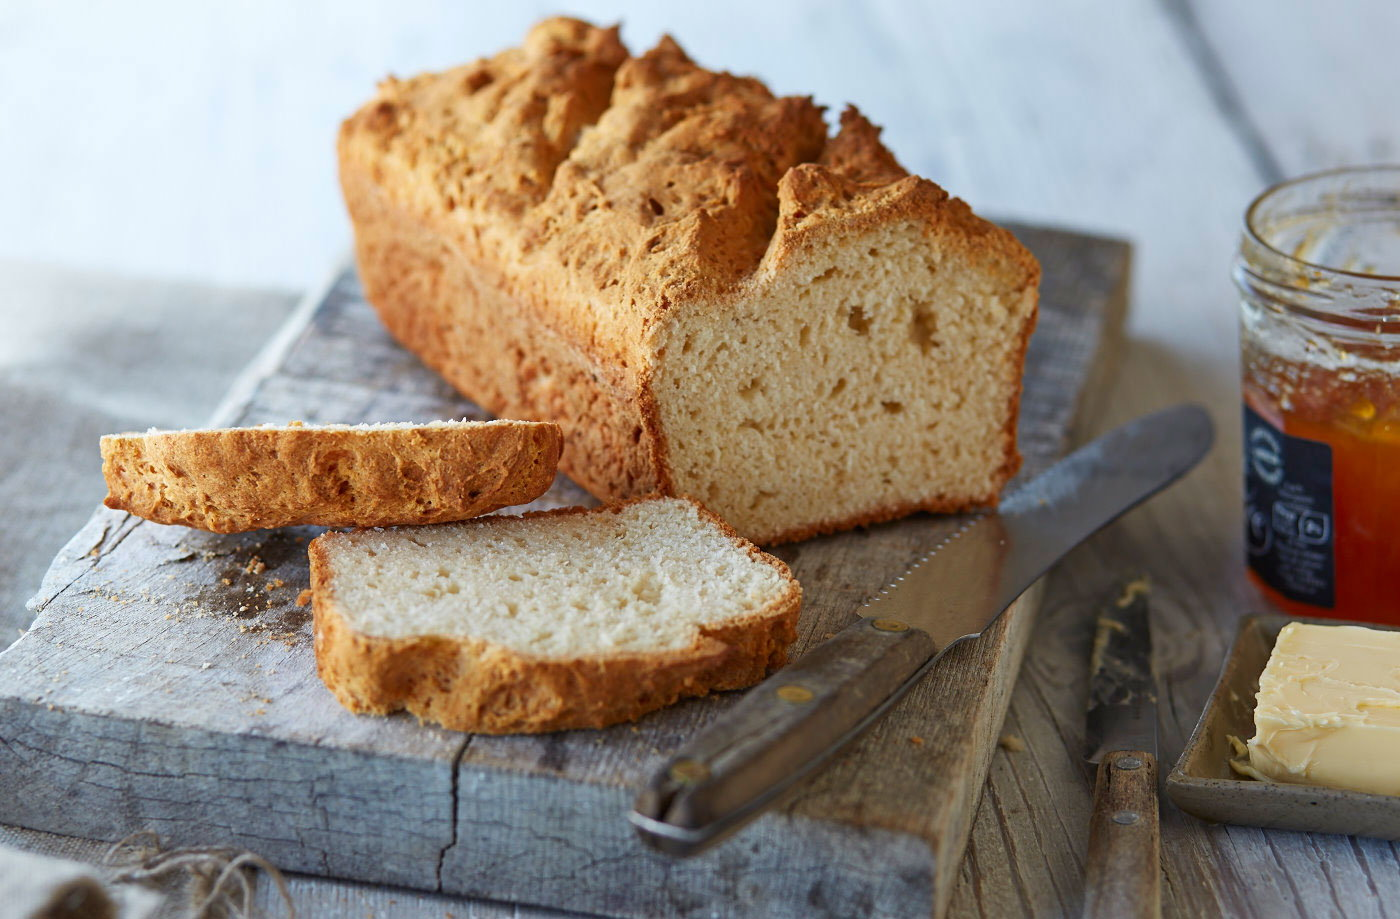 How to make gluten-free bread